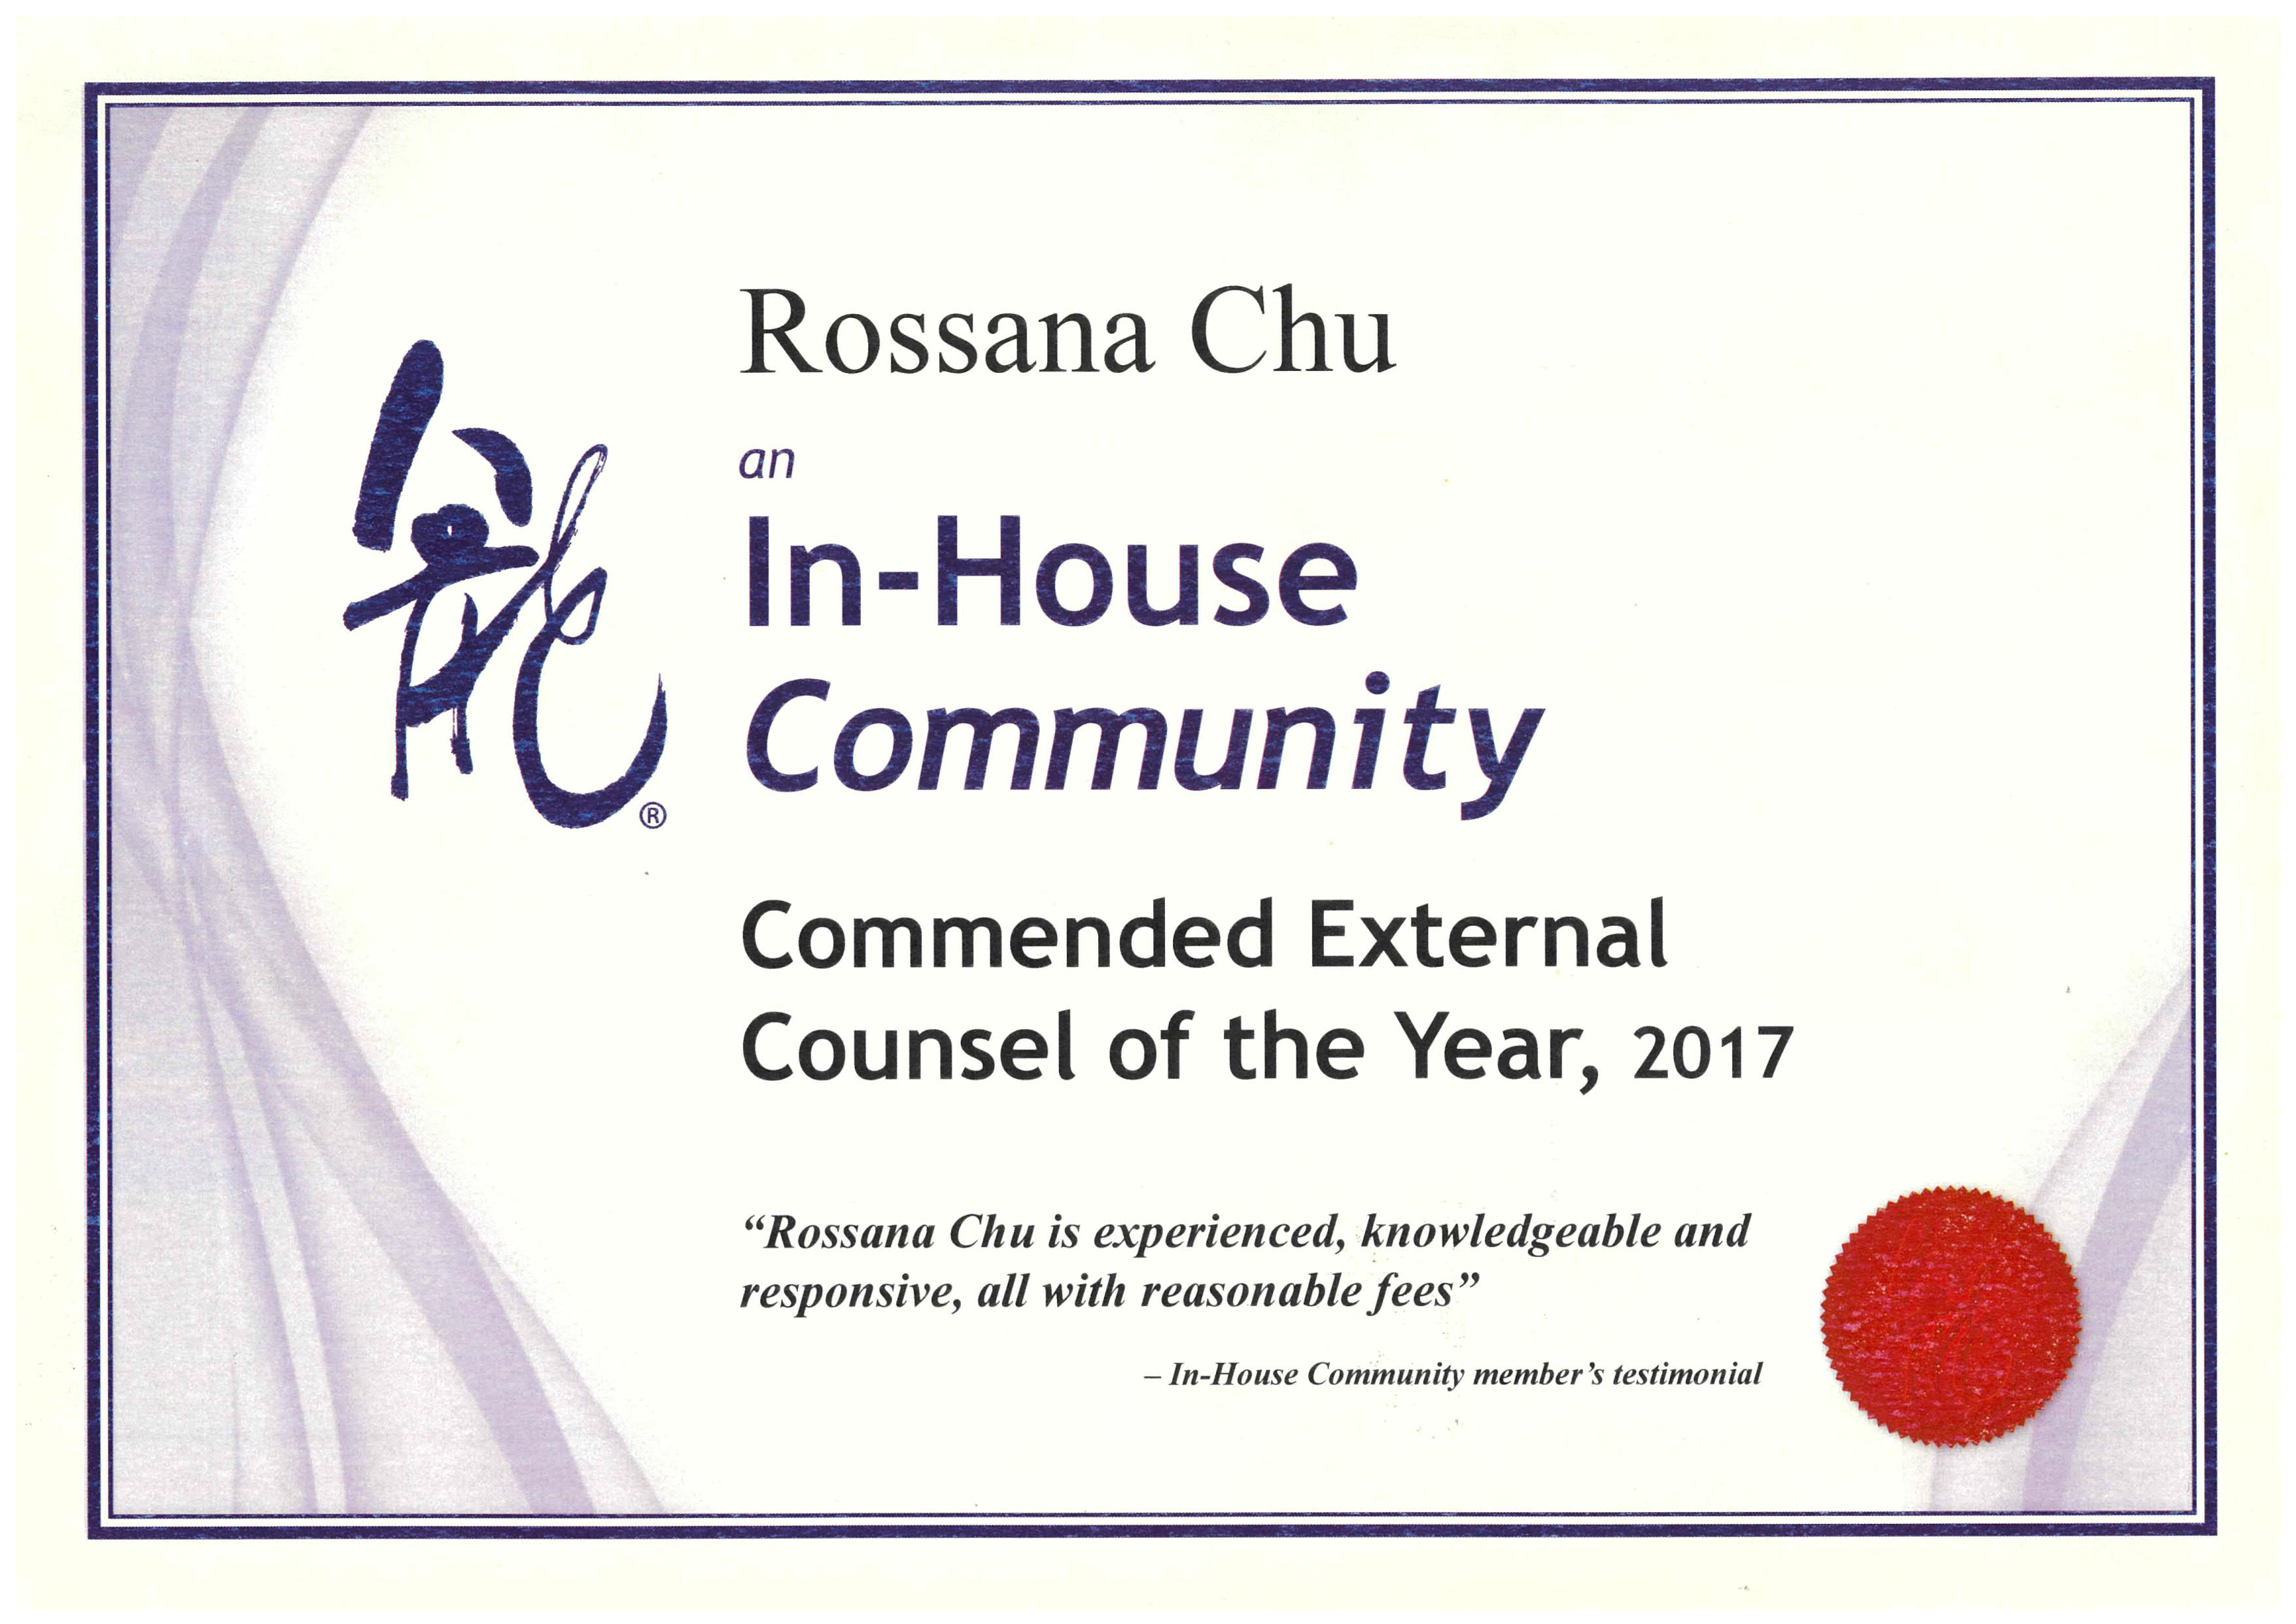 Commended External Counsel of the Year as named by the In-House Community, 2017